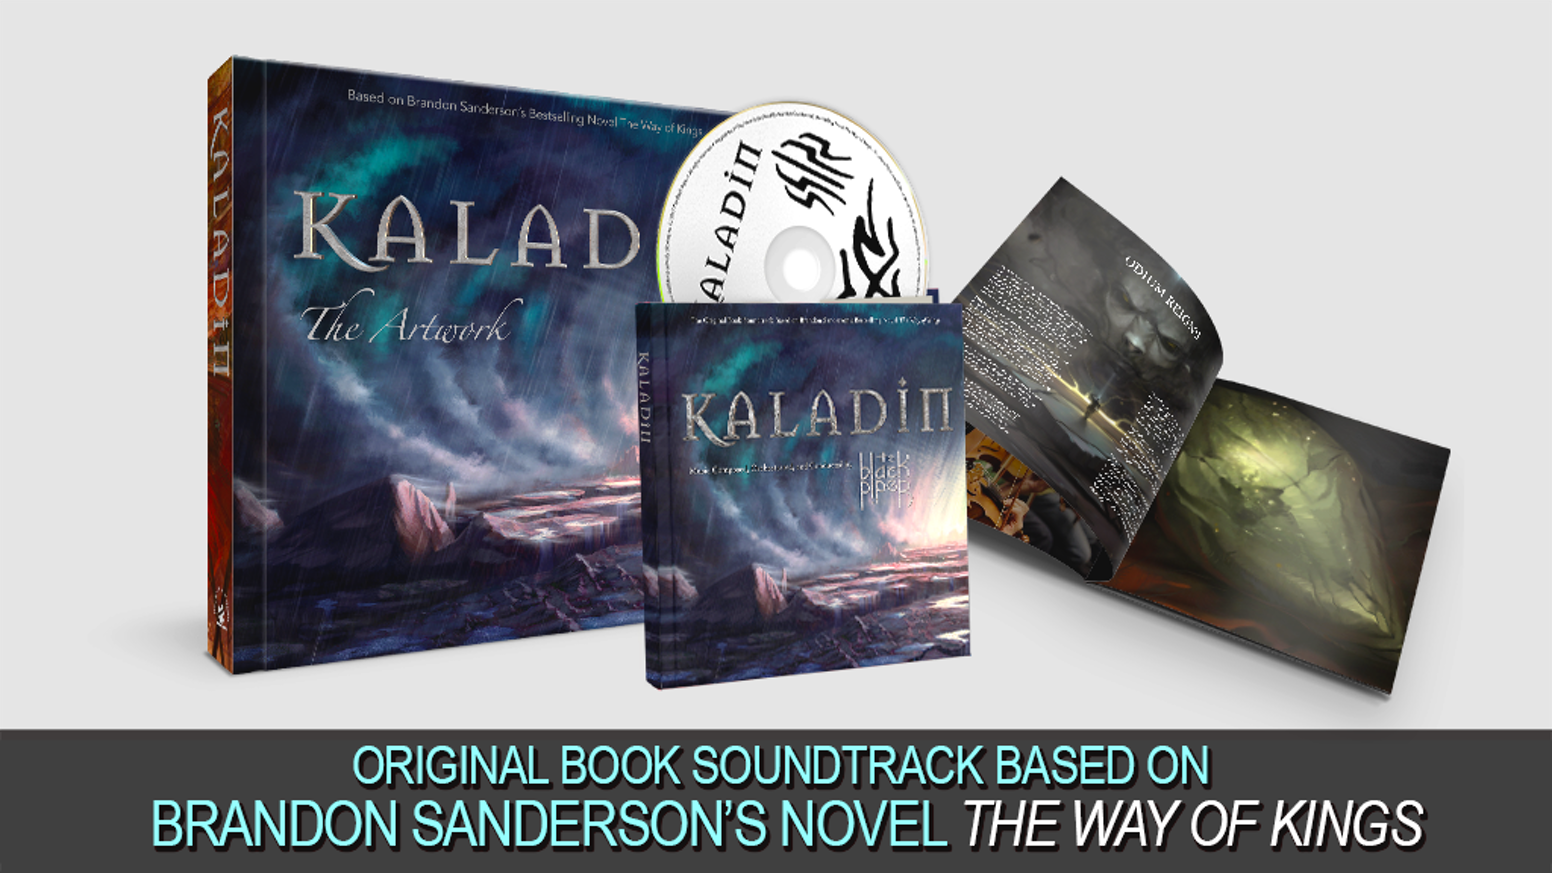 An Original Cinematic Style Book Soundtrack Inspired By The Stormlight Archive Novels Brandon Sanderson